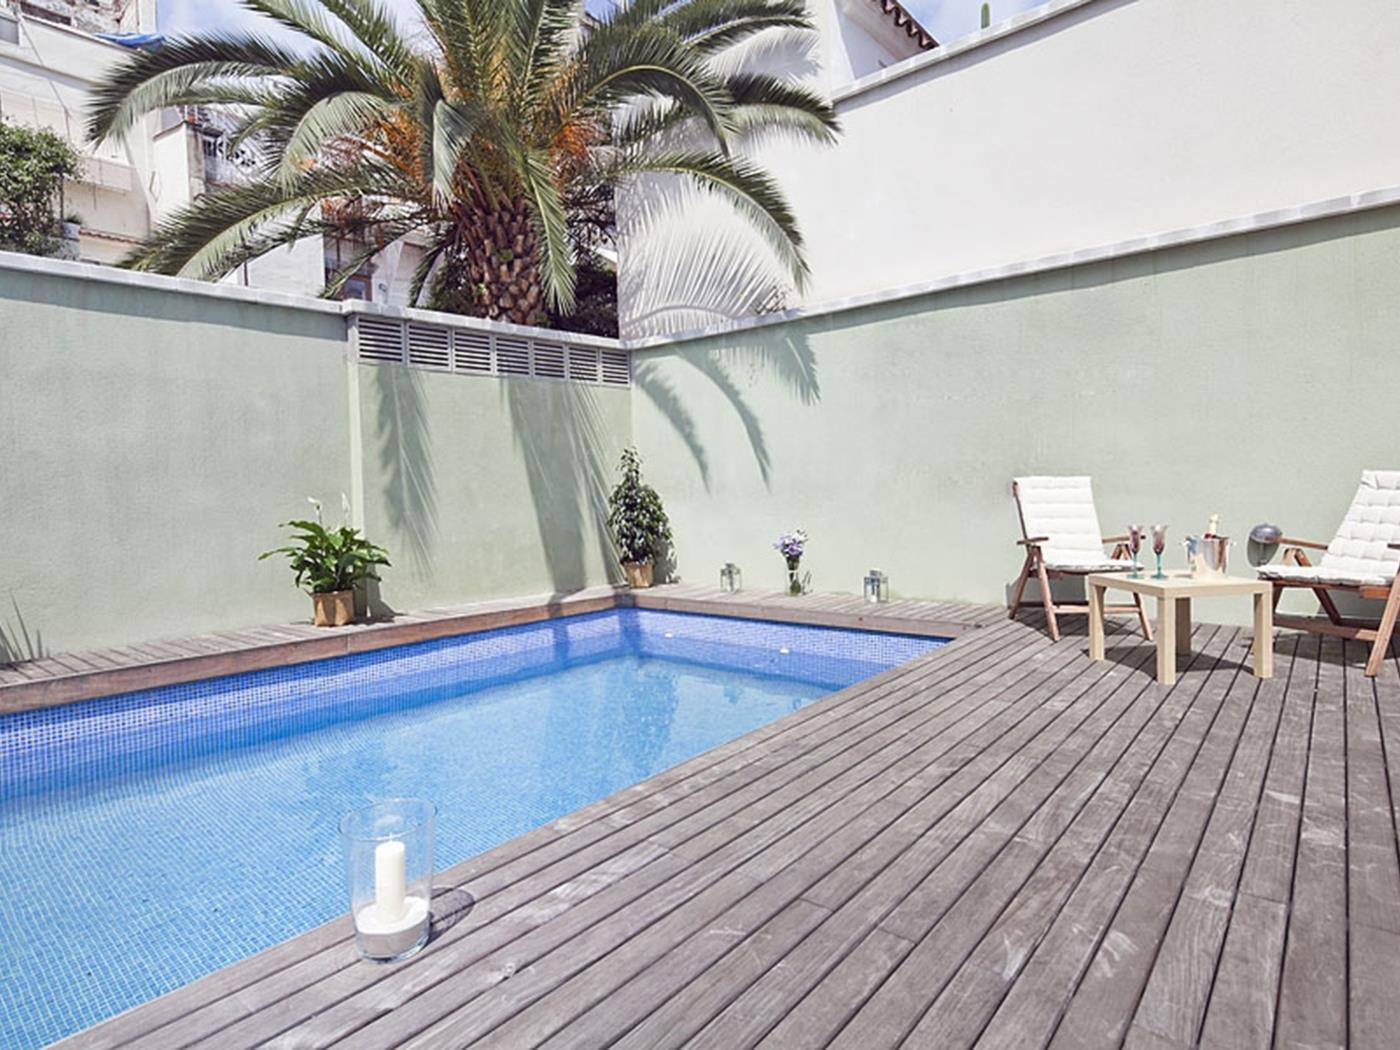 Appartement avec Terrasse et Piscine à Sagrada Familia pour 6 - My Space Barcelona Appartements